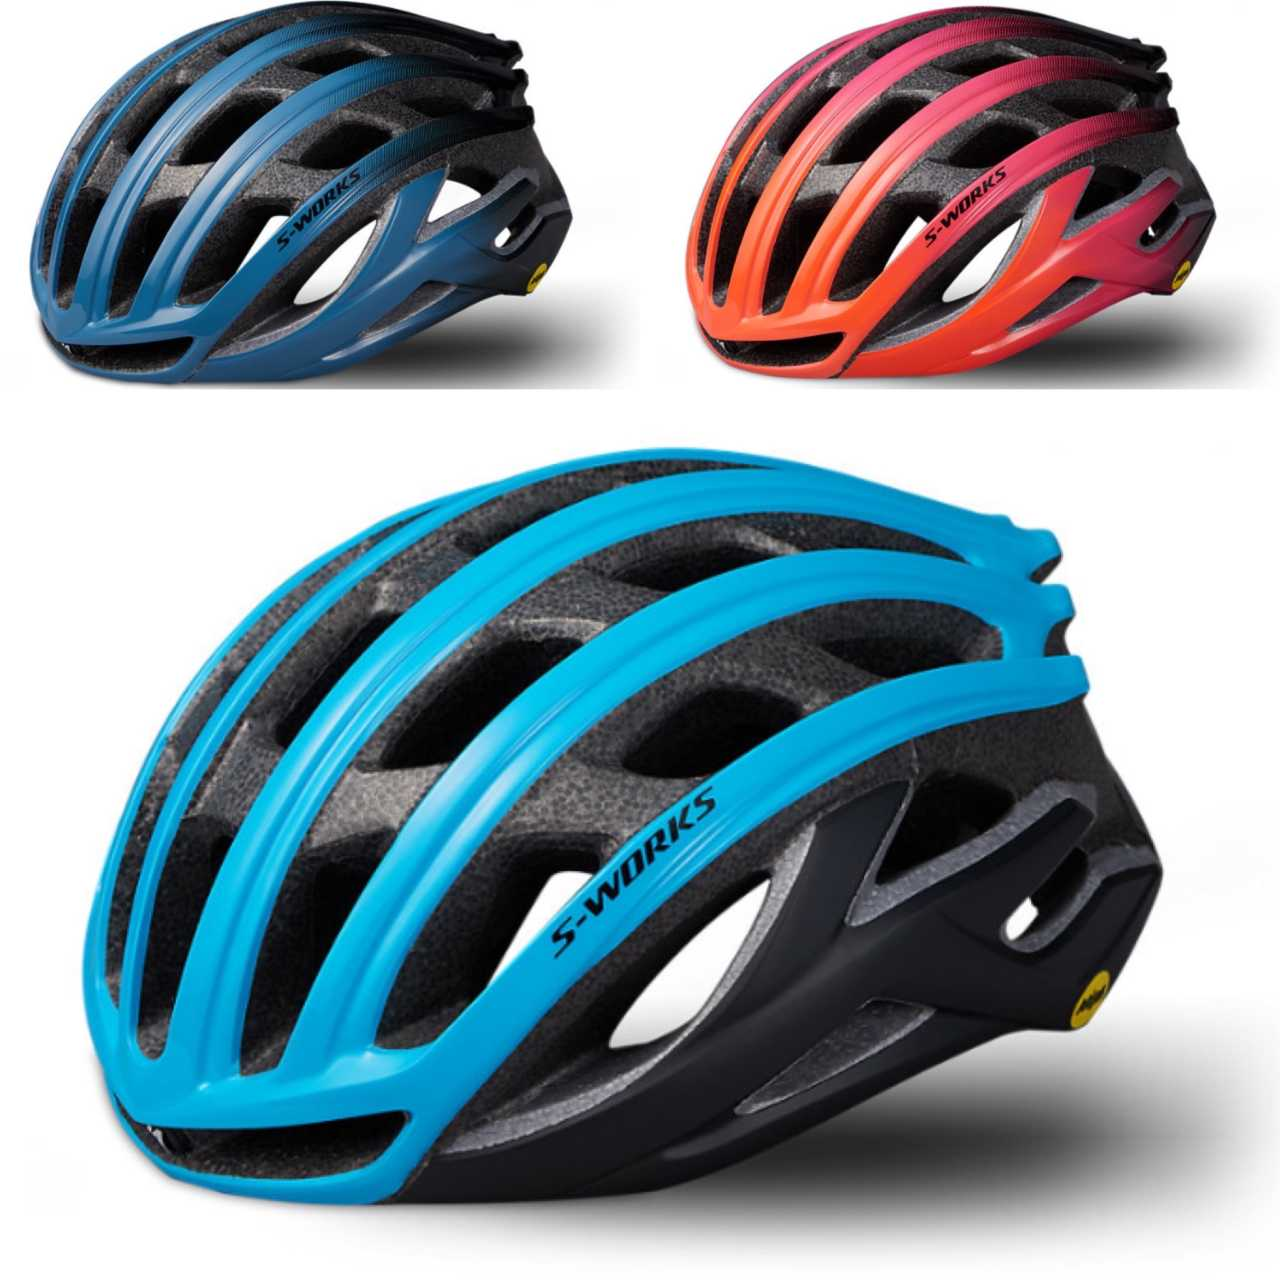 SPECIALIZED S-WORKS PREVAIL 2 MIPS & ANGI equipped cycling helment